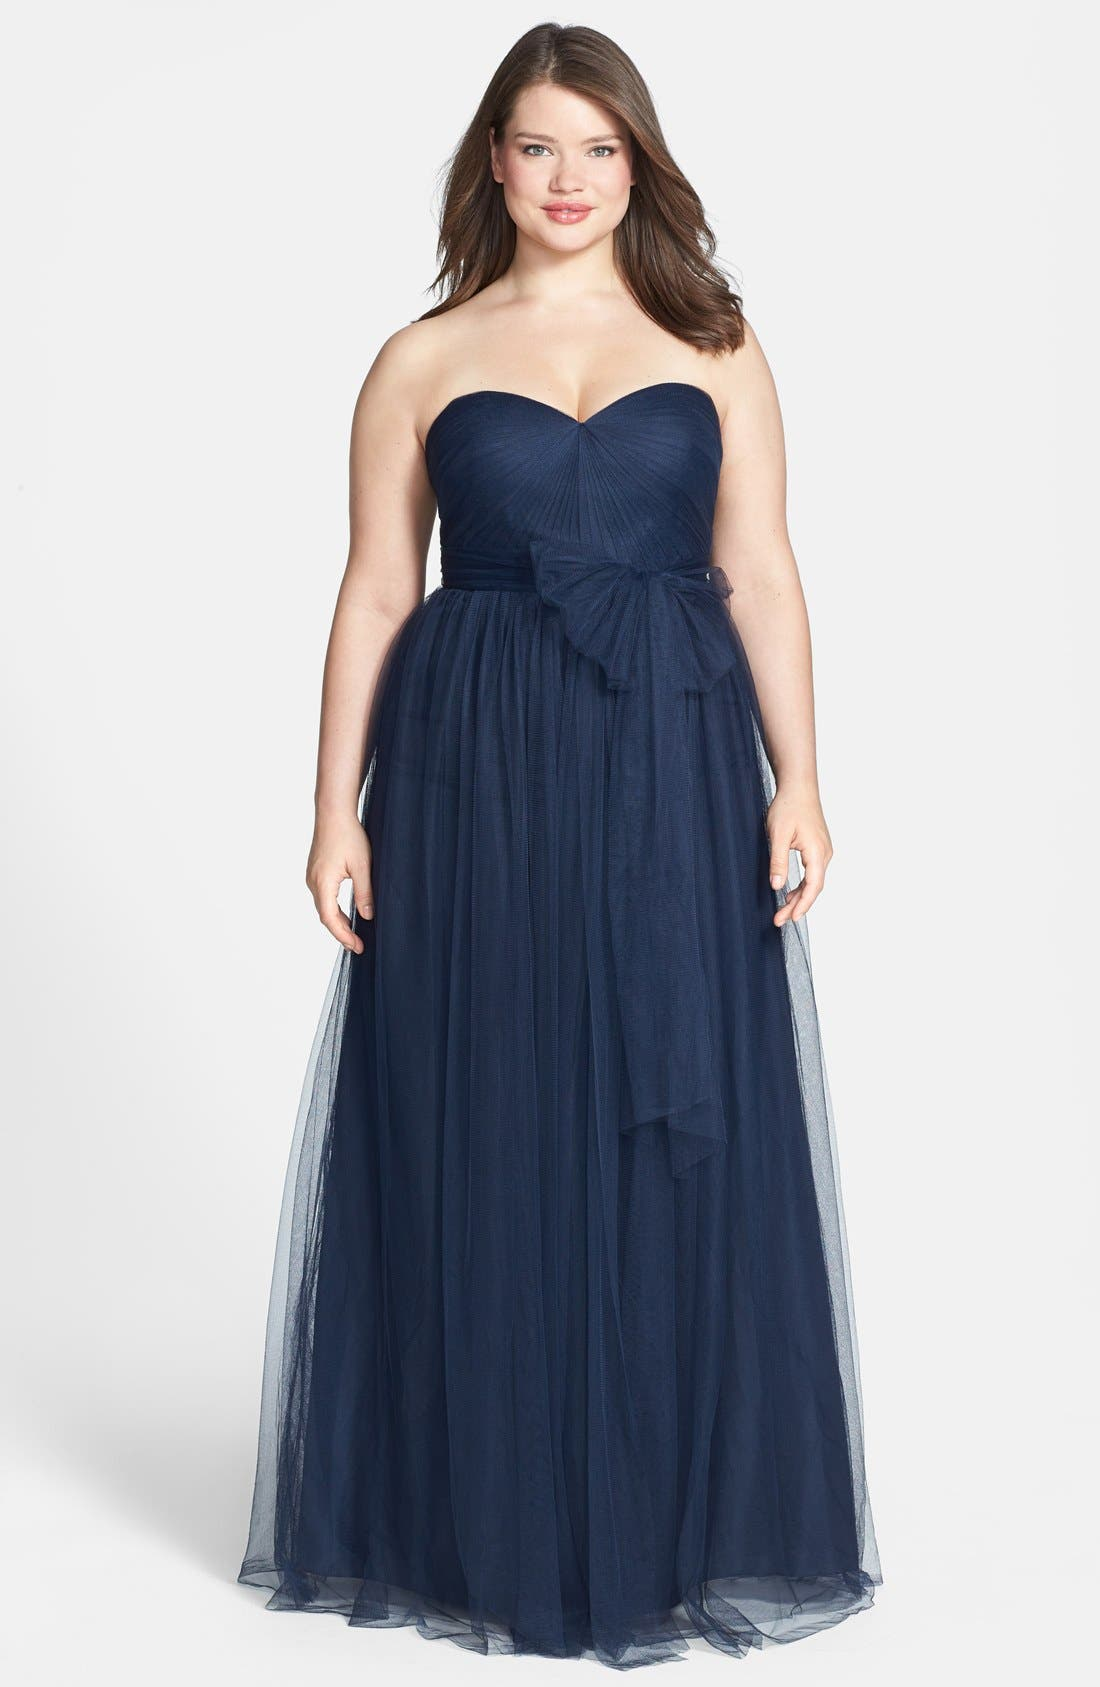 Jenny Yoo 'Annabelle' Convertible Tulle Column Dress (Plus Size)